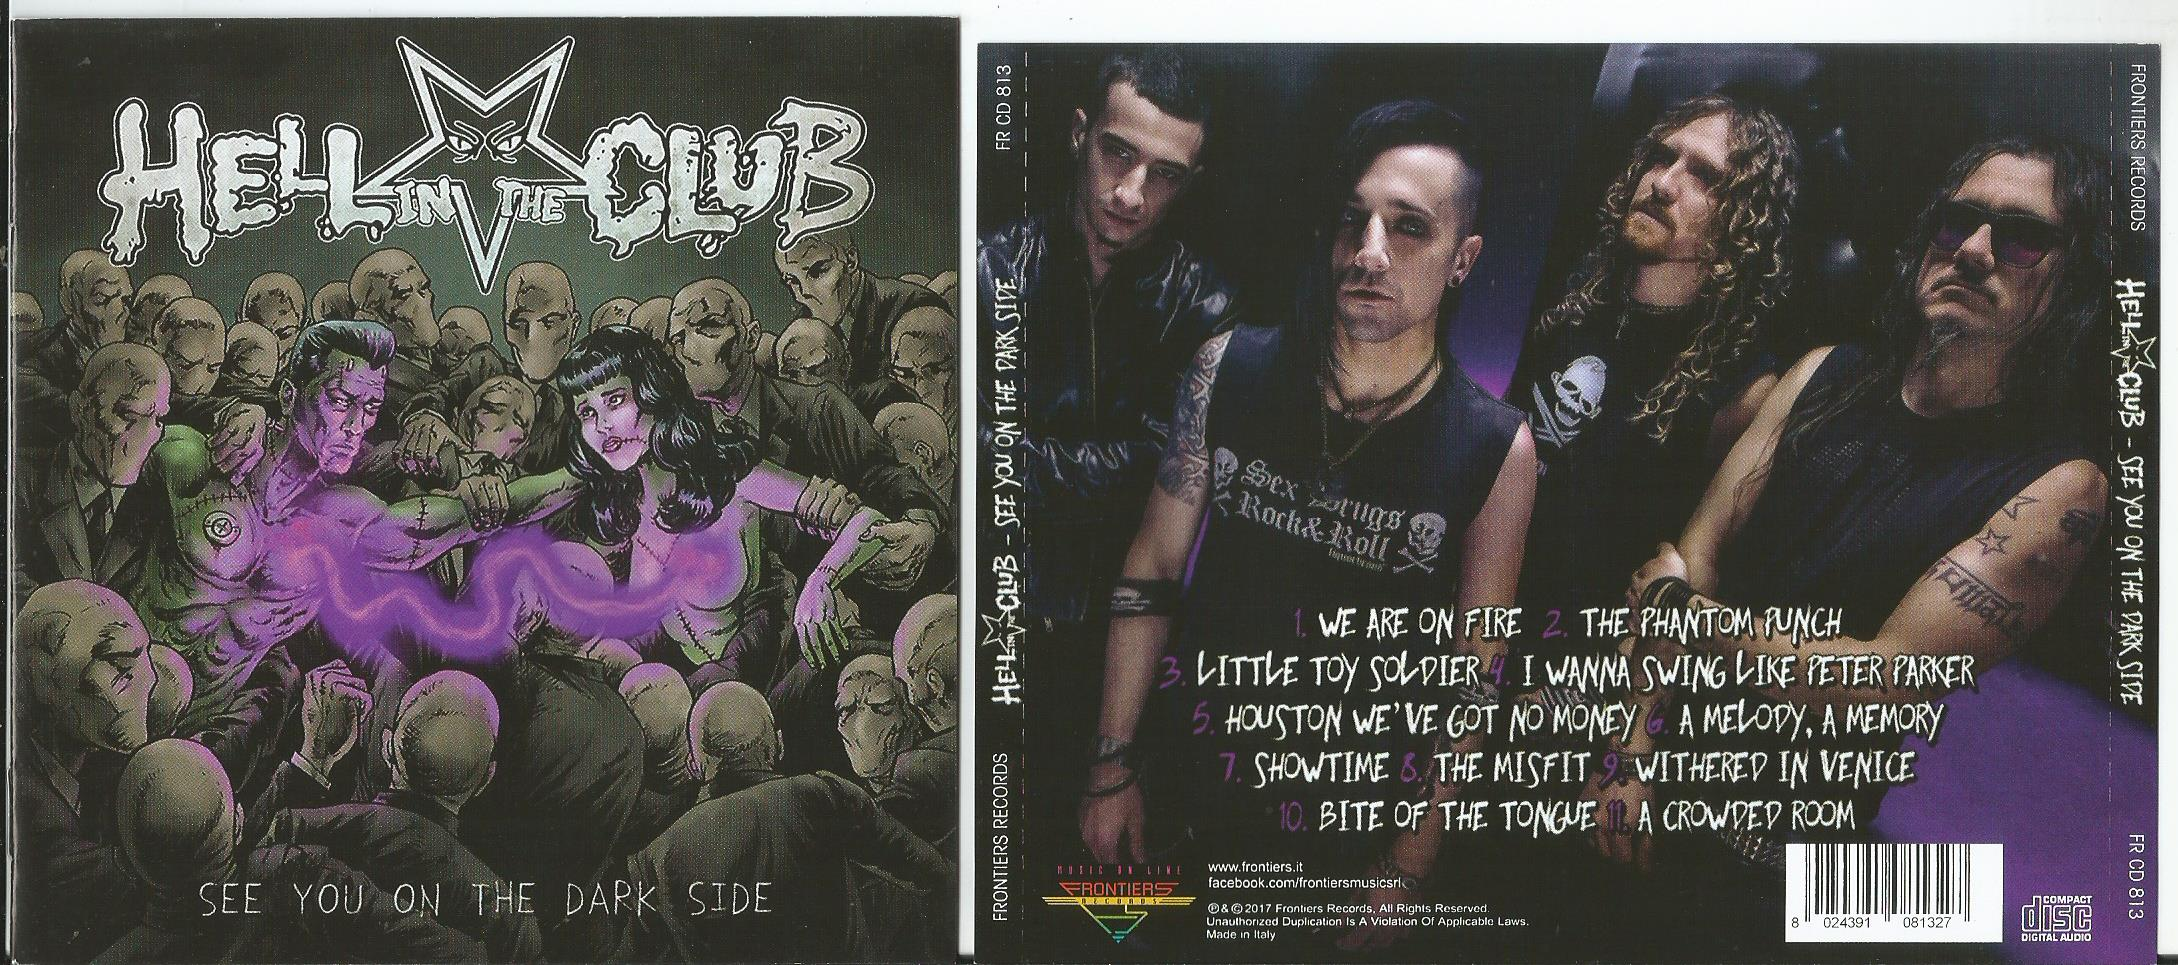 HELL IN THE CLUB See You On The Dark Side (12page booklet with lyrics)